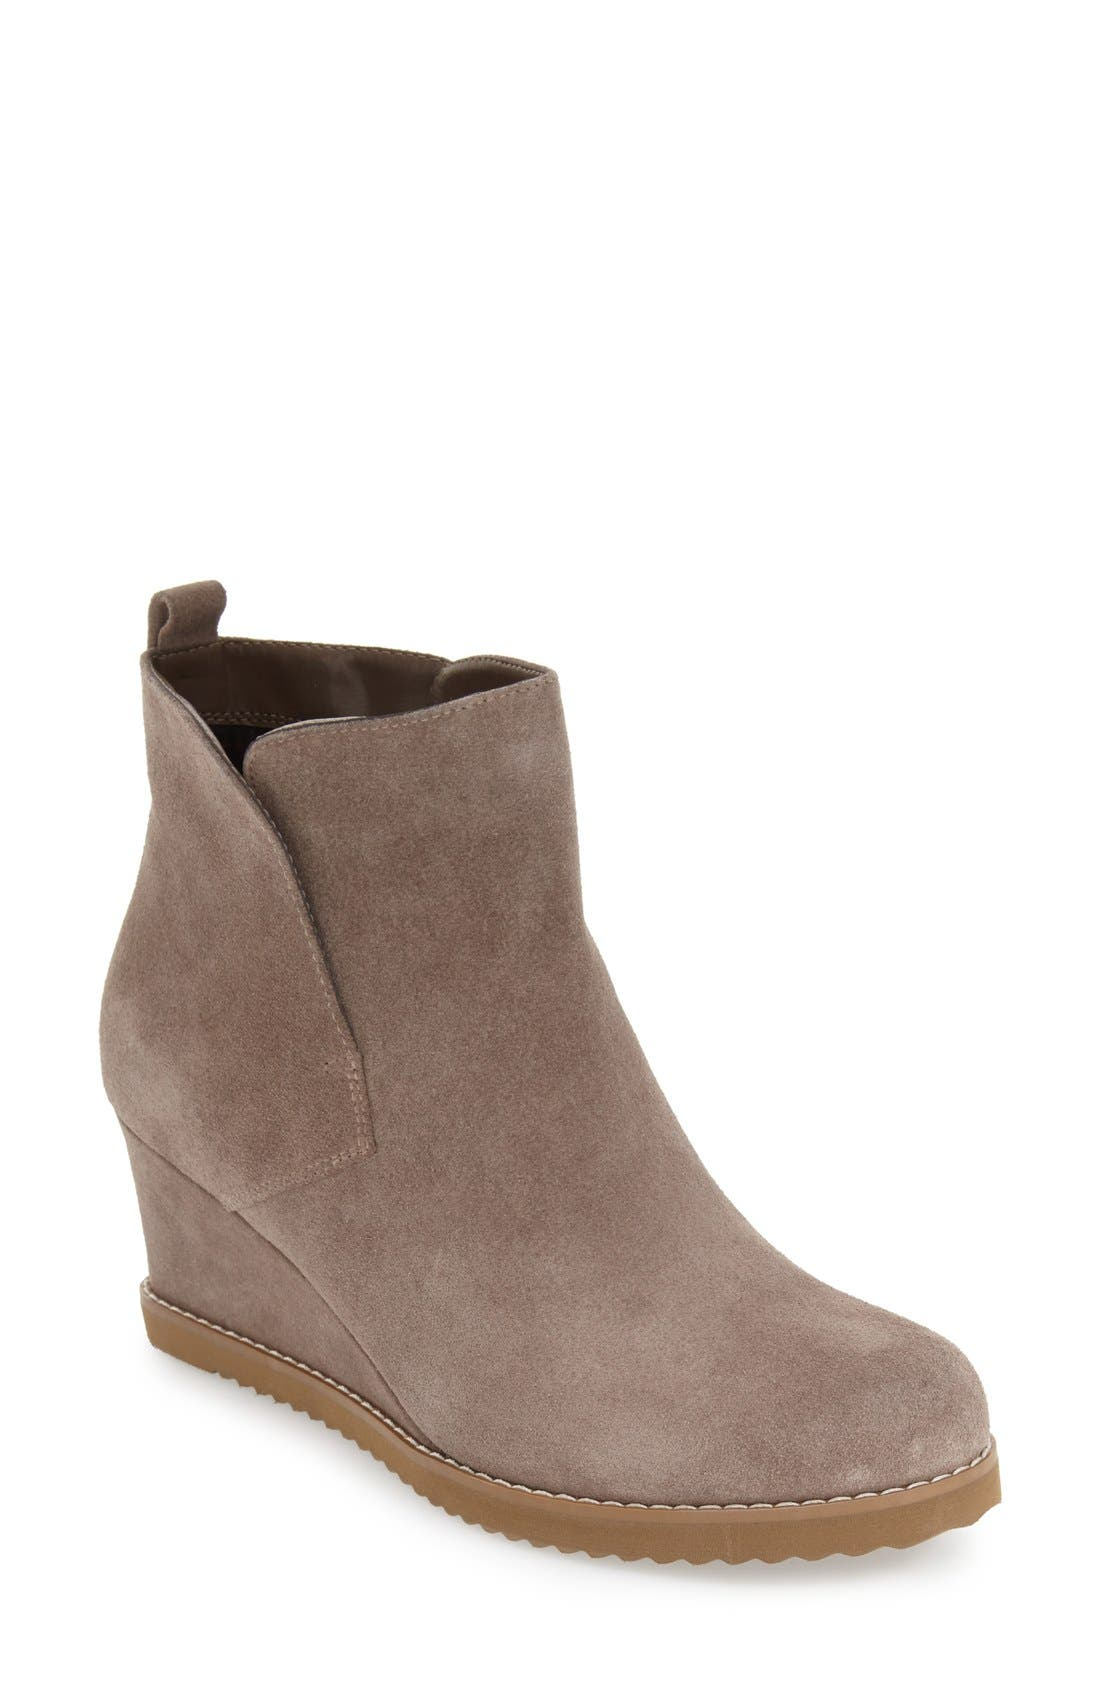 Alternate Image 1 Selected - Blondo 'Karla' Waterproof Wedge Bootie (Women)